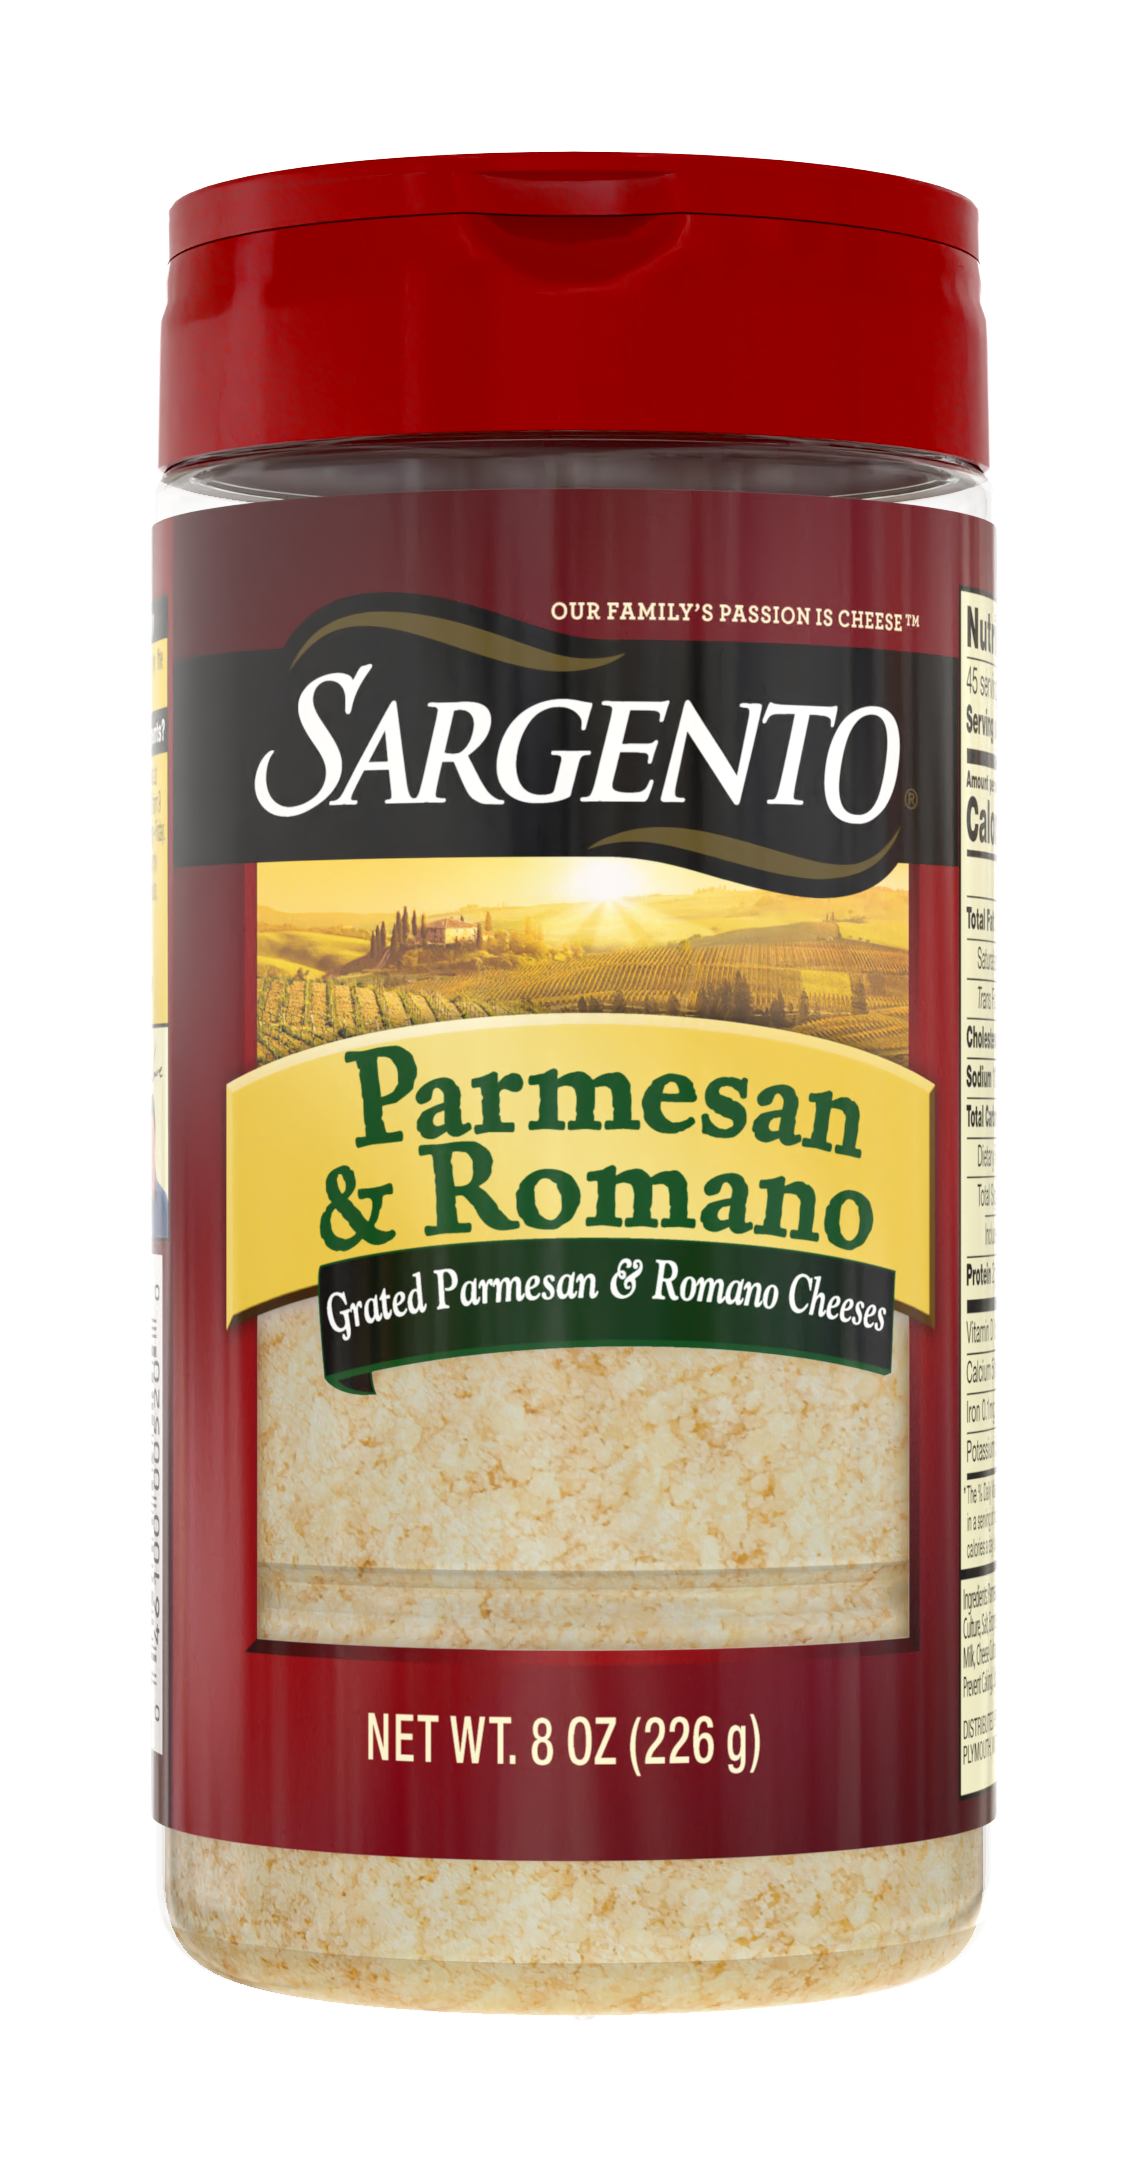 Sargento® Grated Parmesan & Romano Cheeses